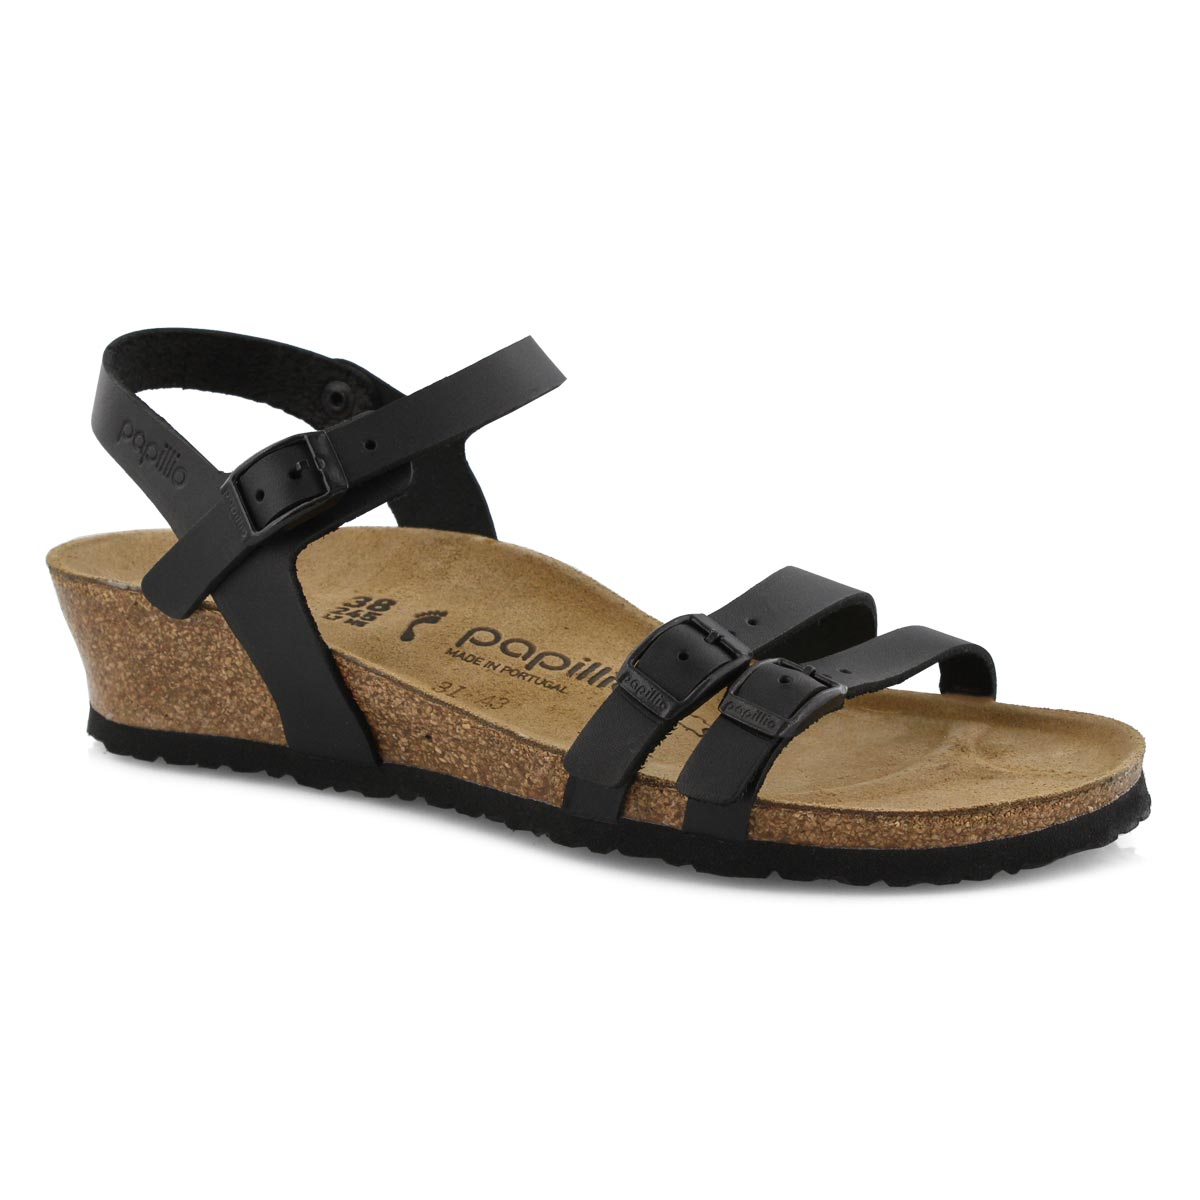 Lds Lana LTR black wedge sandal-N